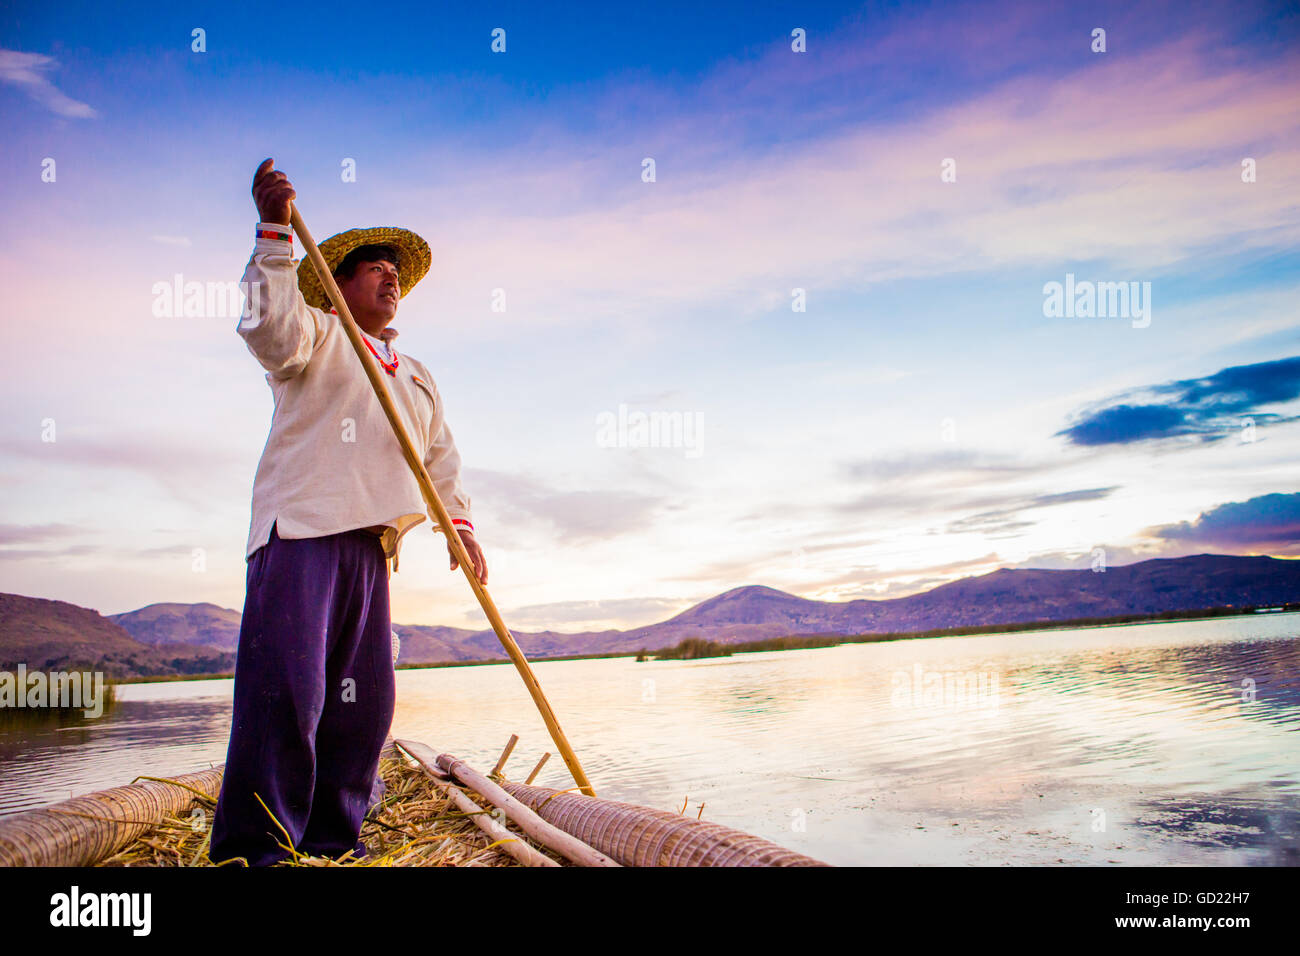 Quechua man rowing a boat on the Floating Grass islands of Uros, Lake Titicaca, Peru, South America - Stock Image